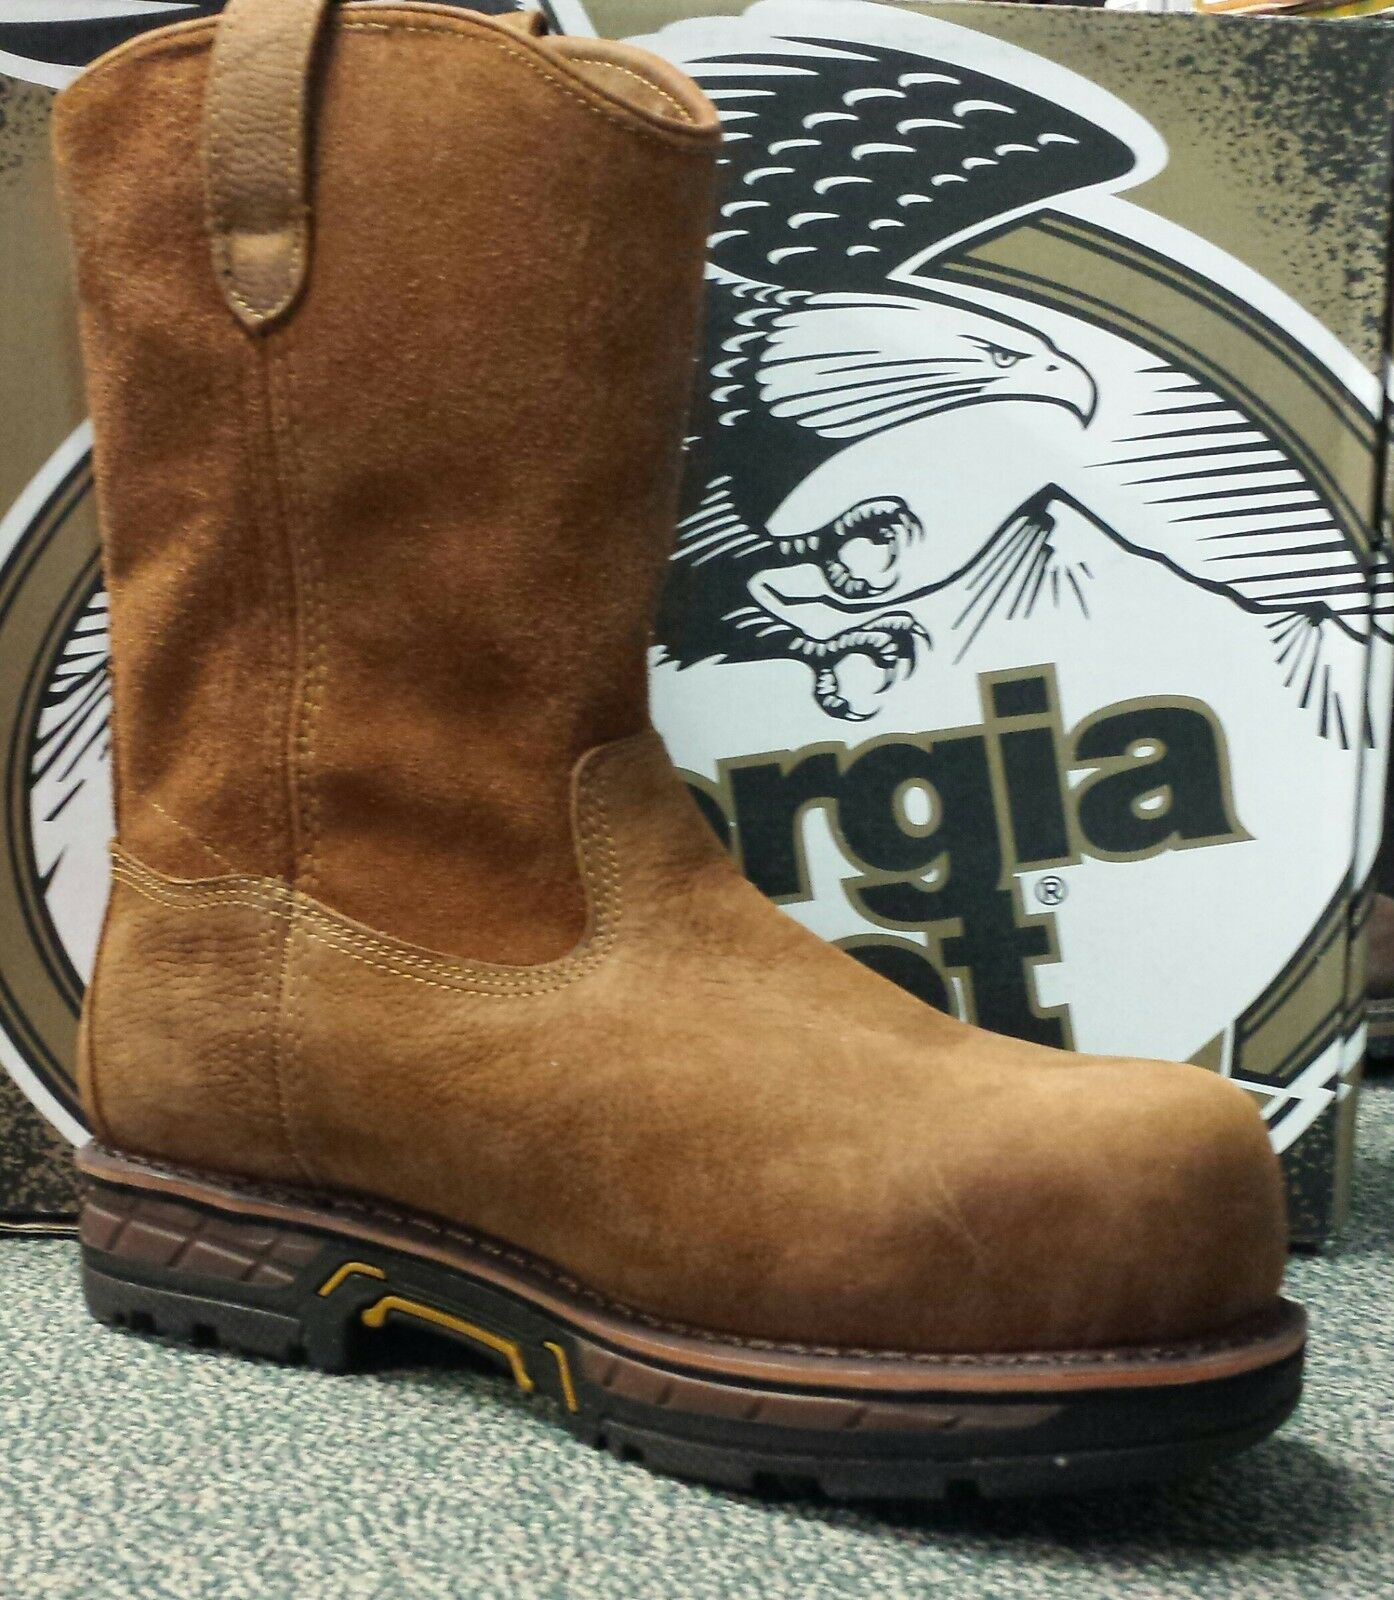 NEW Mens Size 9.5W Georgia Safety Comp Toe Waterproof Leather Work Boots GBOT021